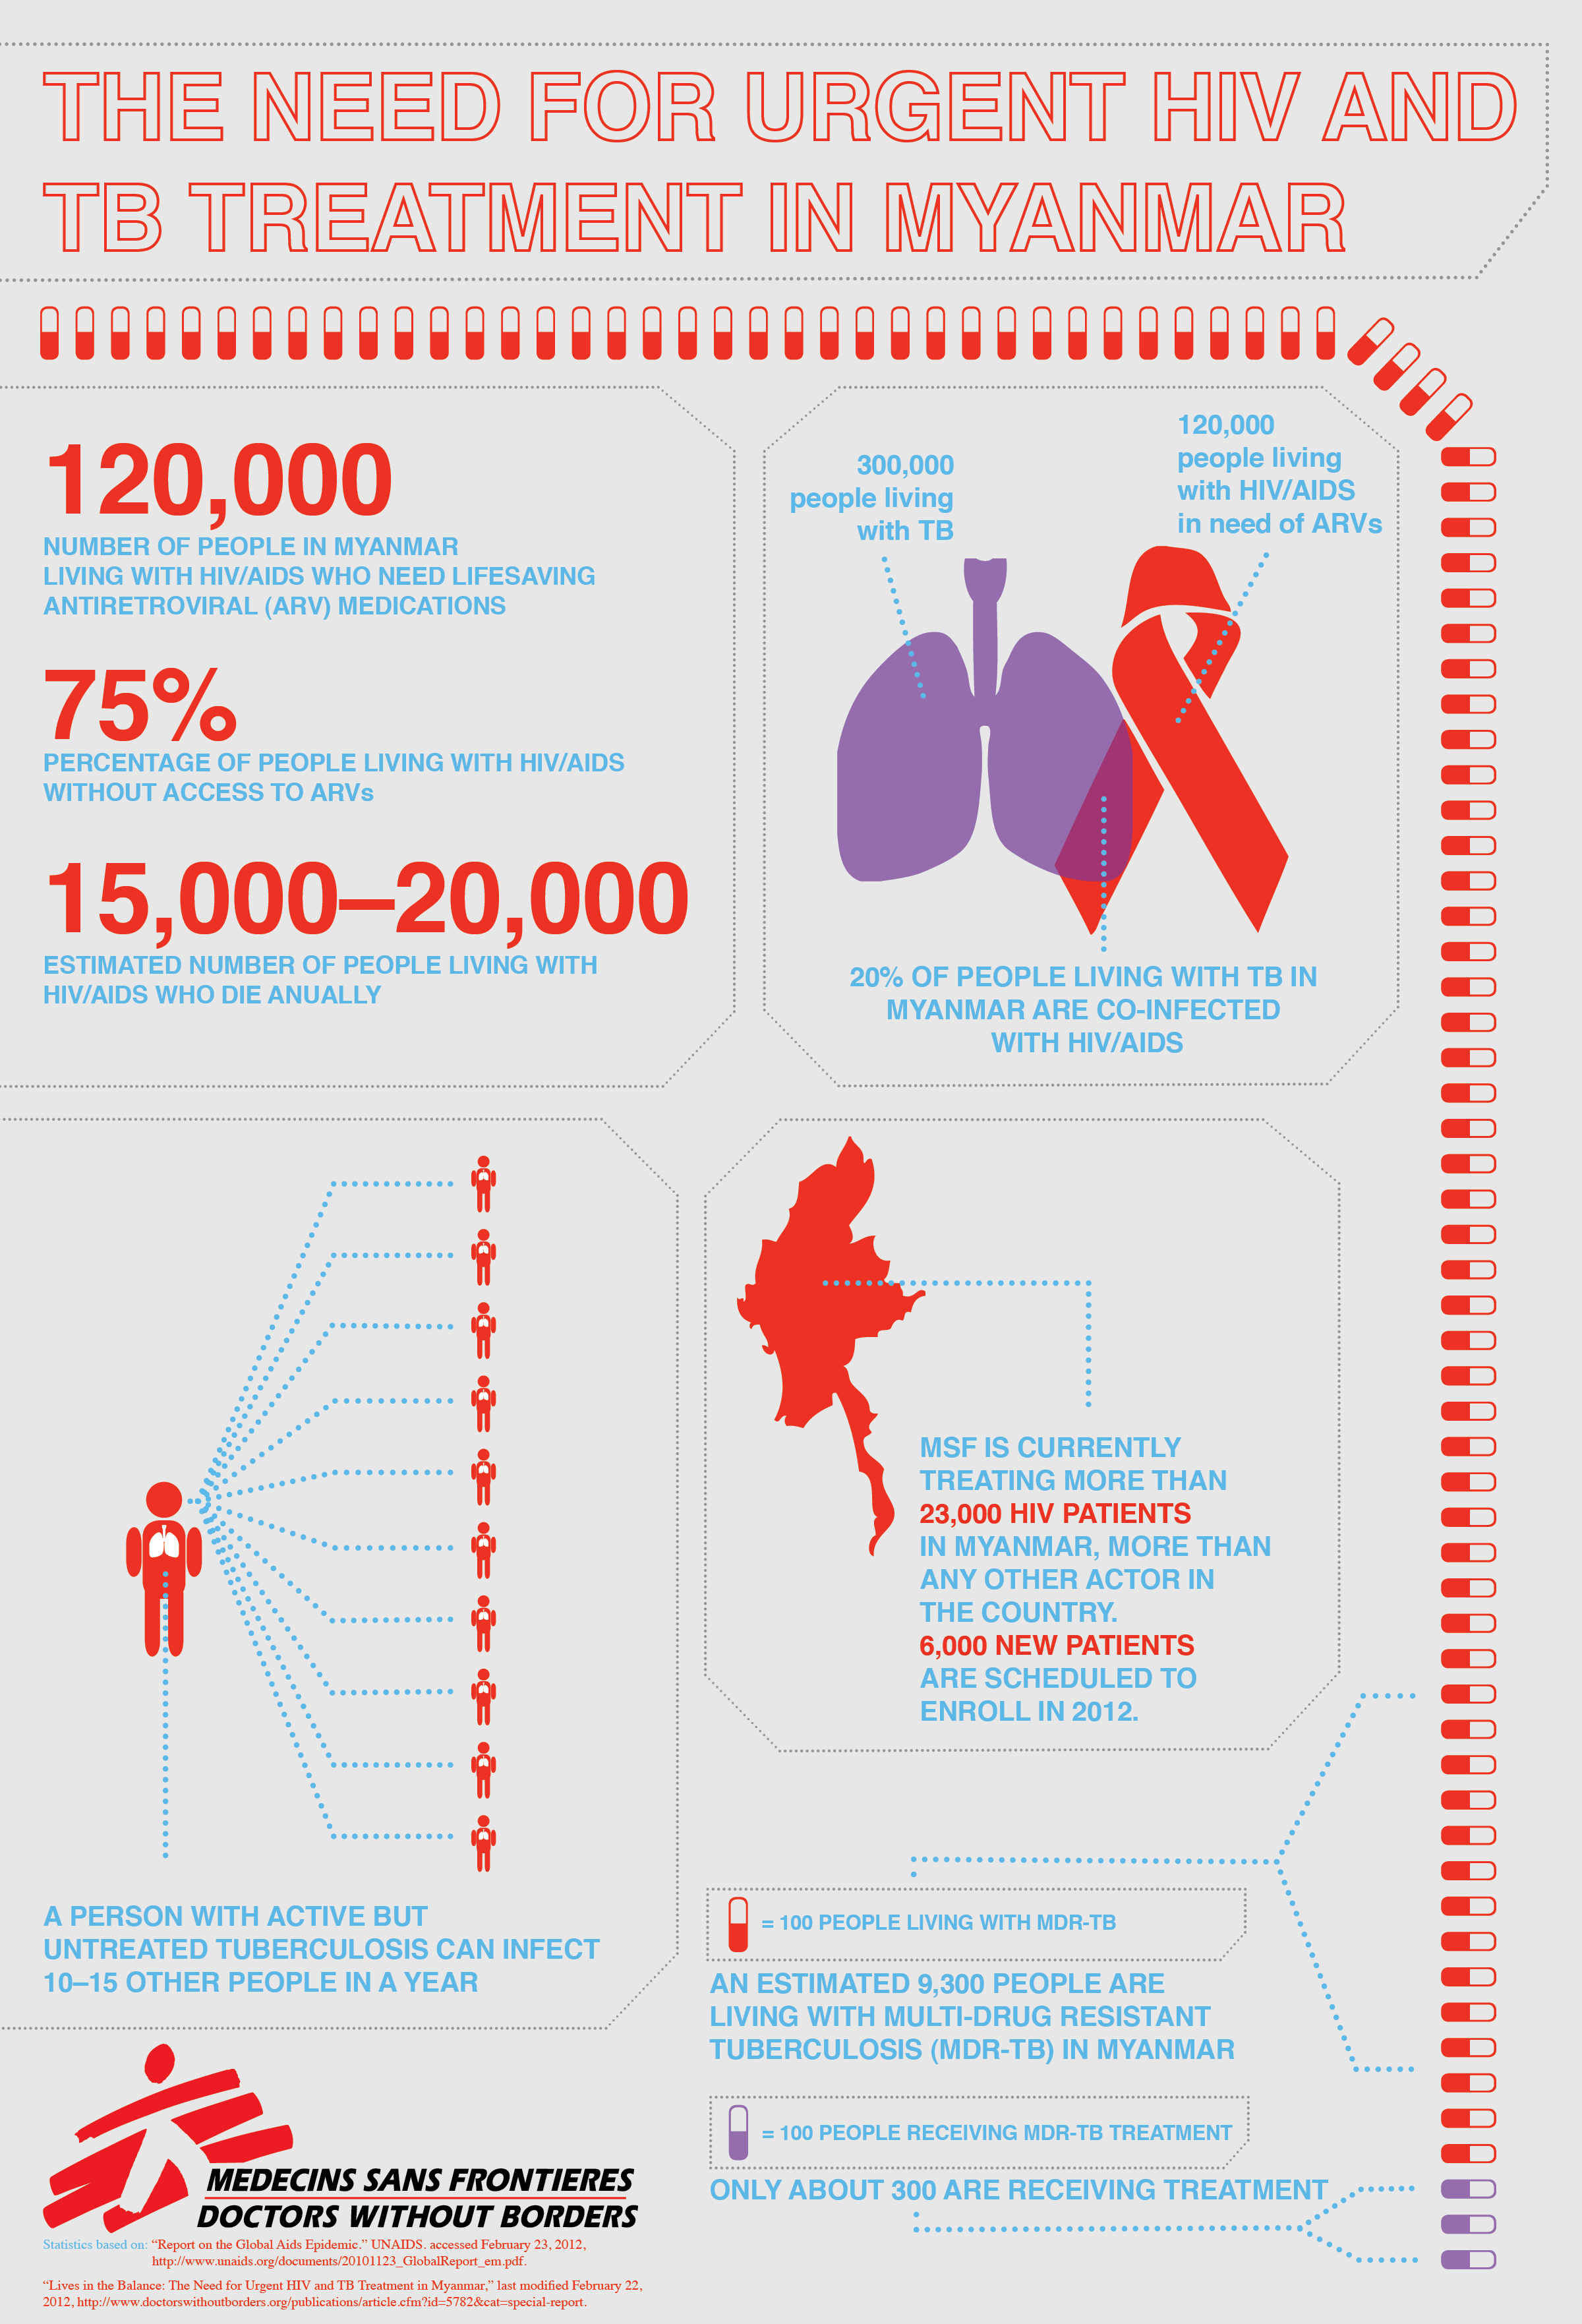 tb-and-hiv-coinfection-in-myanmar_50578e0484f3e